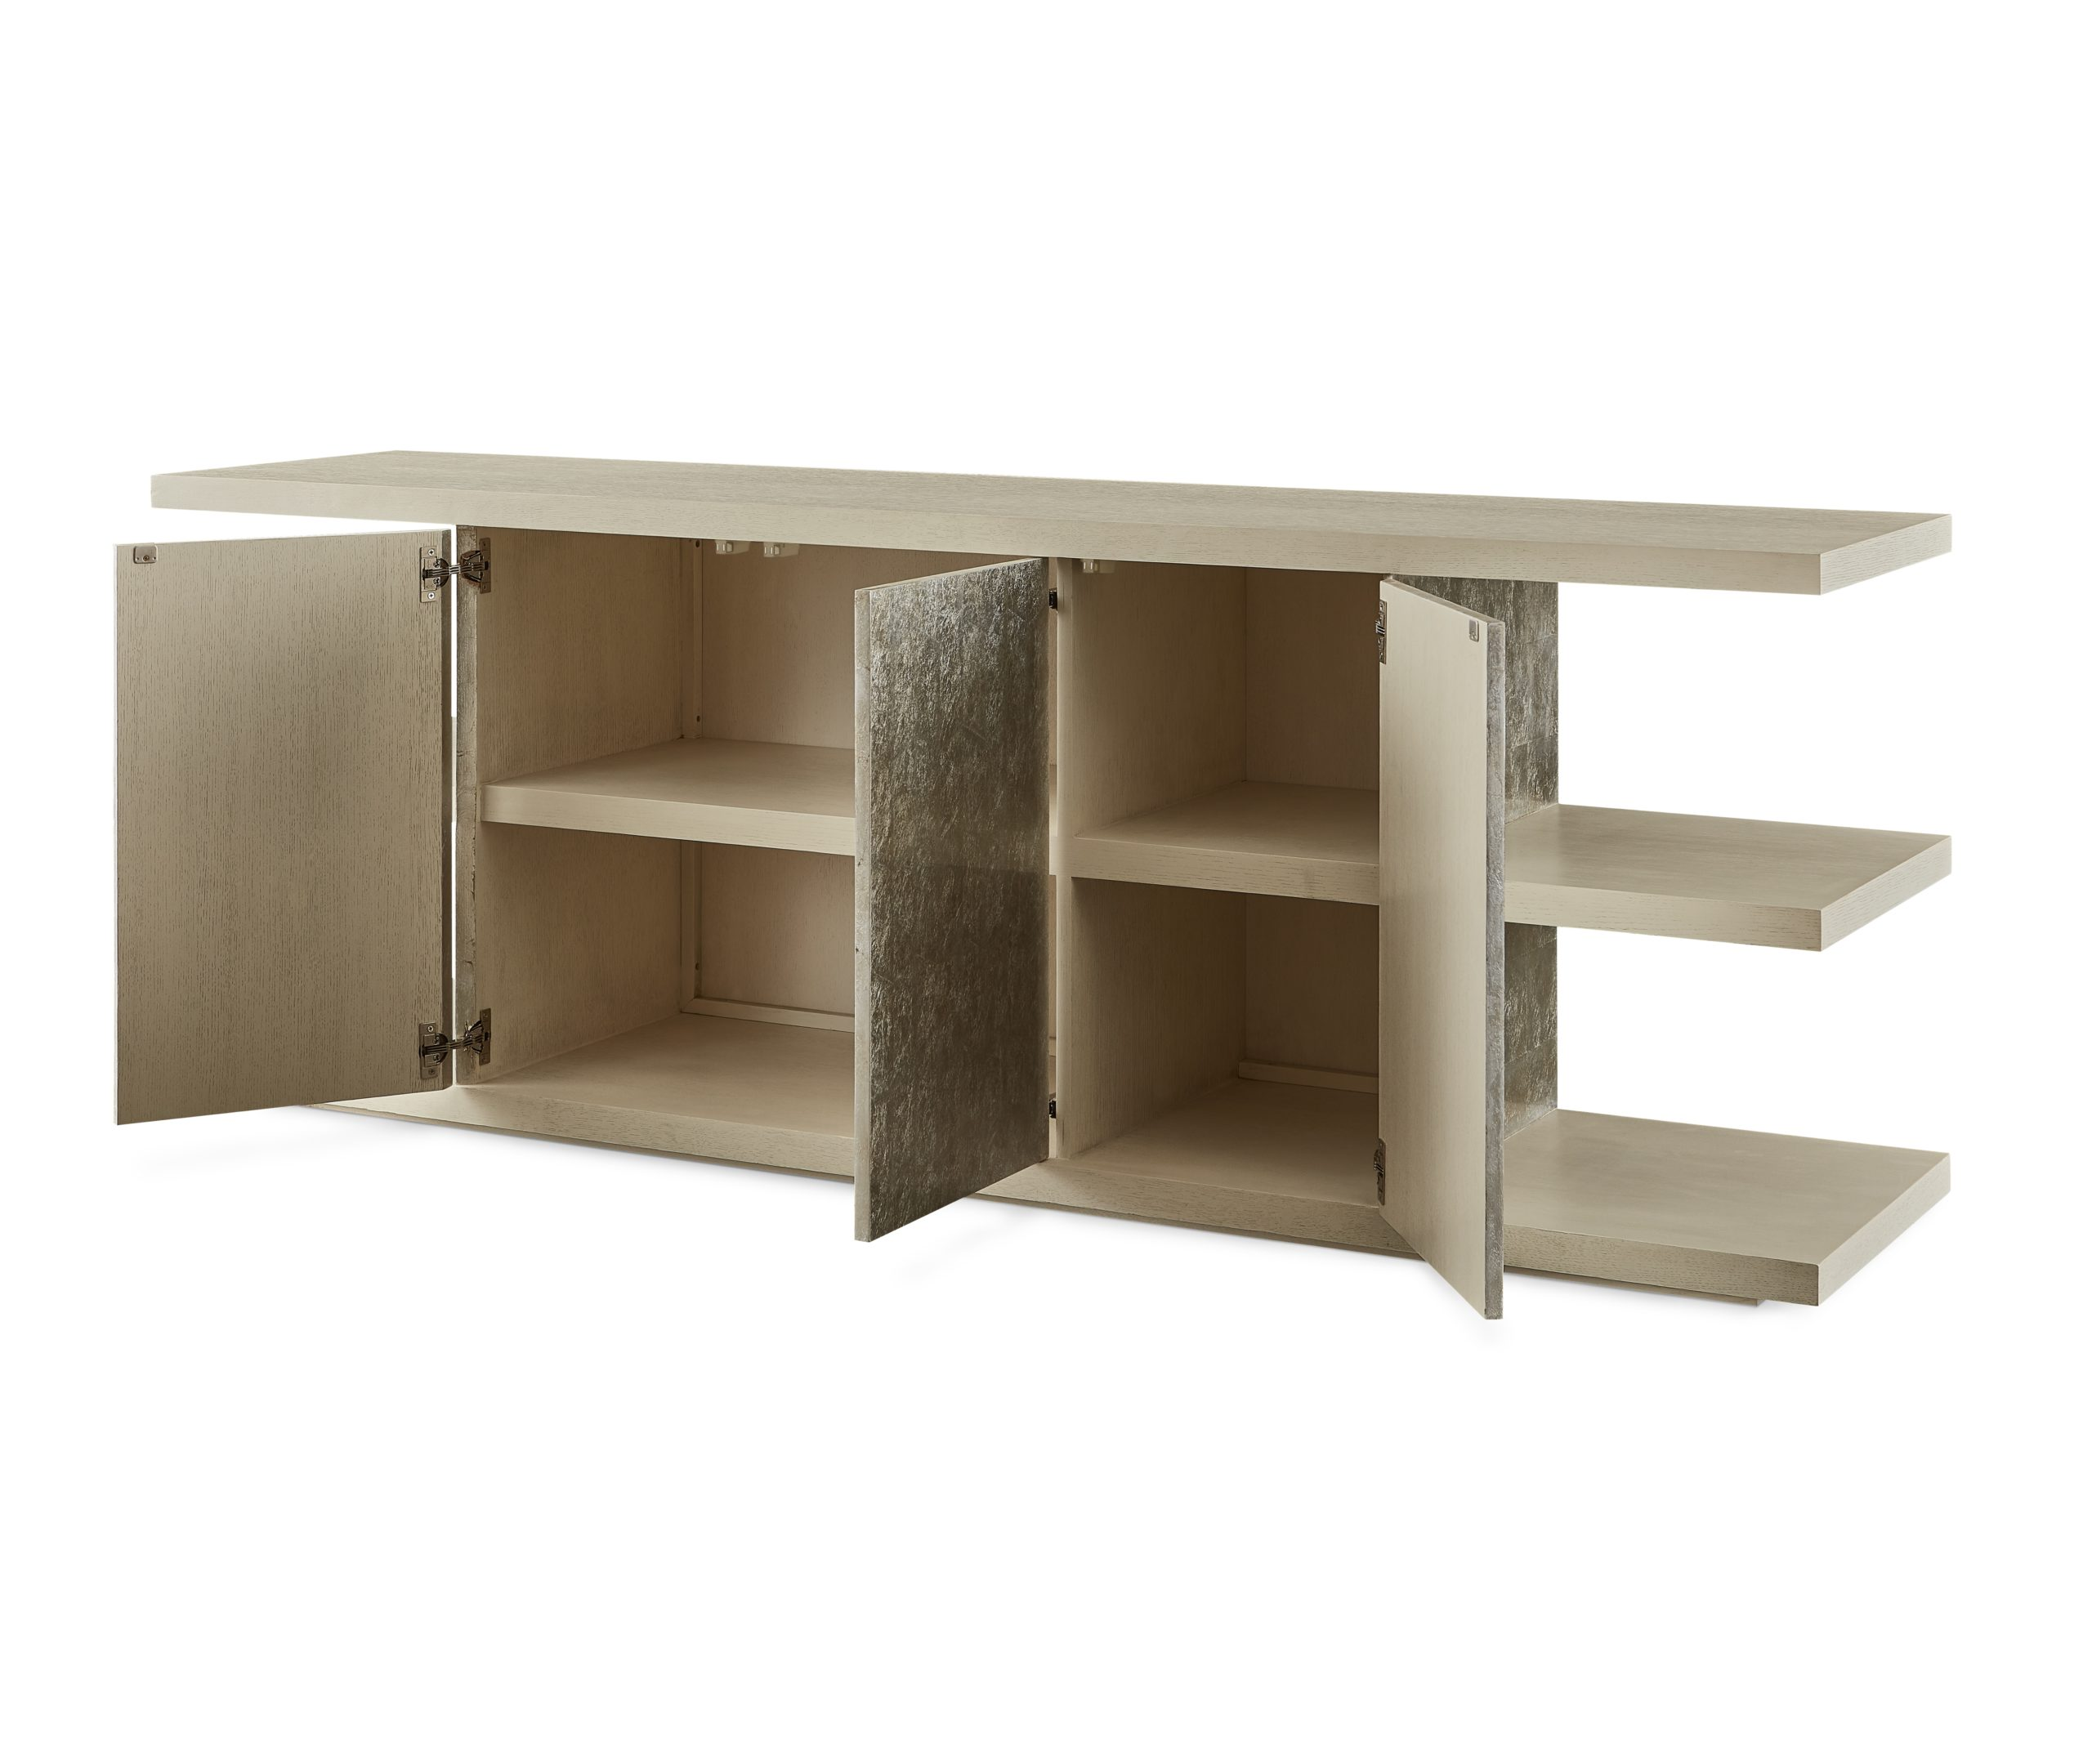 Baker_products_WNWN_hollis_media_console_BAA3064_OPEN-scaled-2